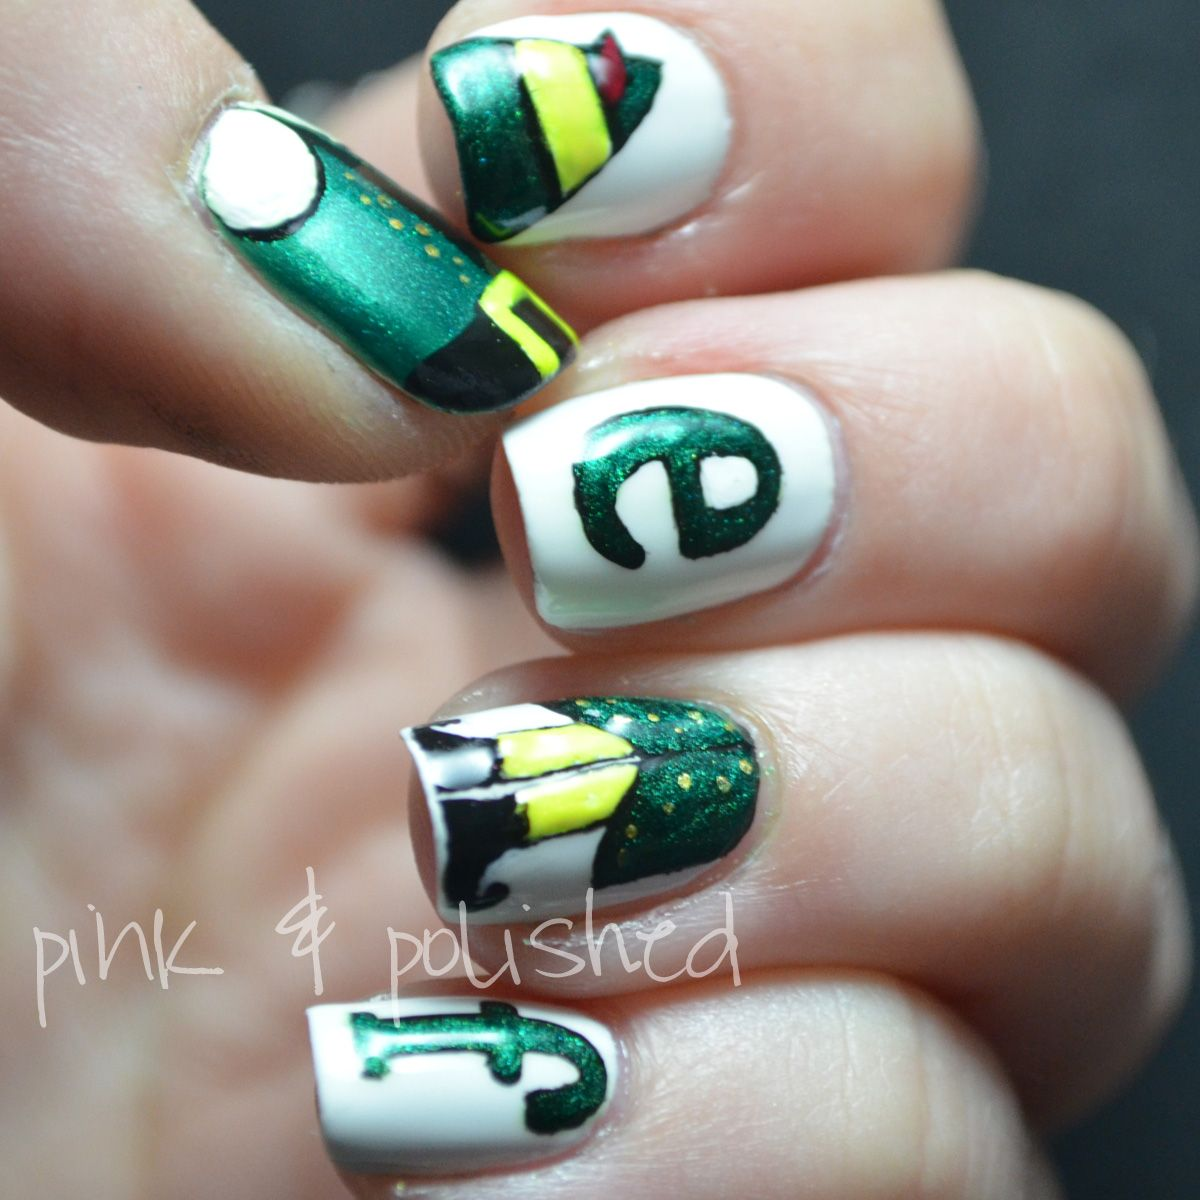 Christmas Nails Elf: Pink & Polished Christmas Elf #nail #nails #nailart